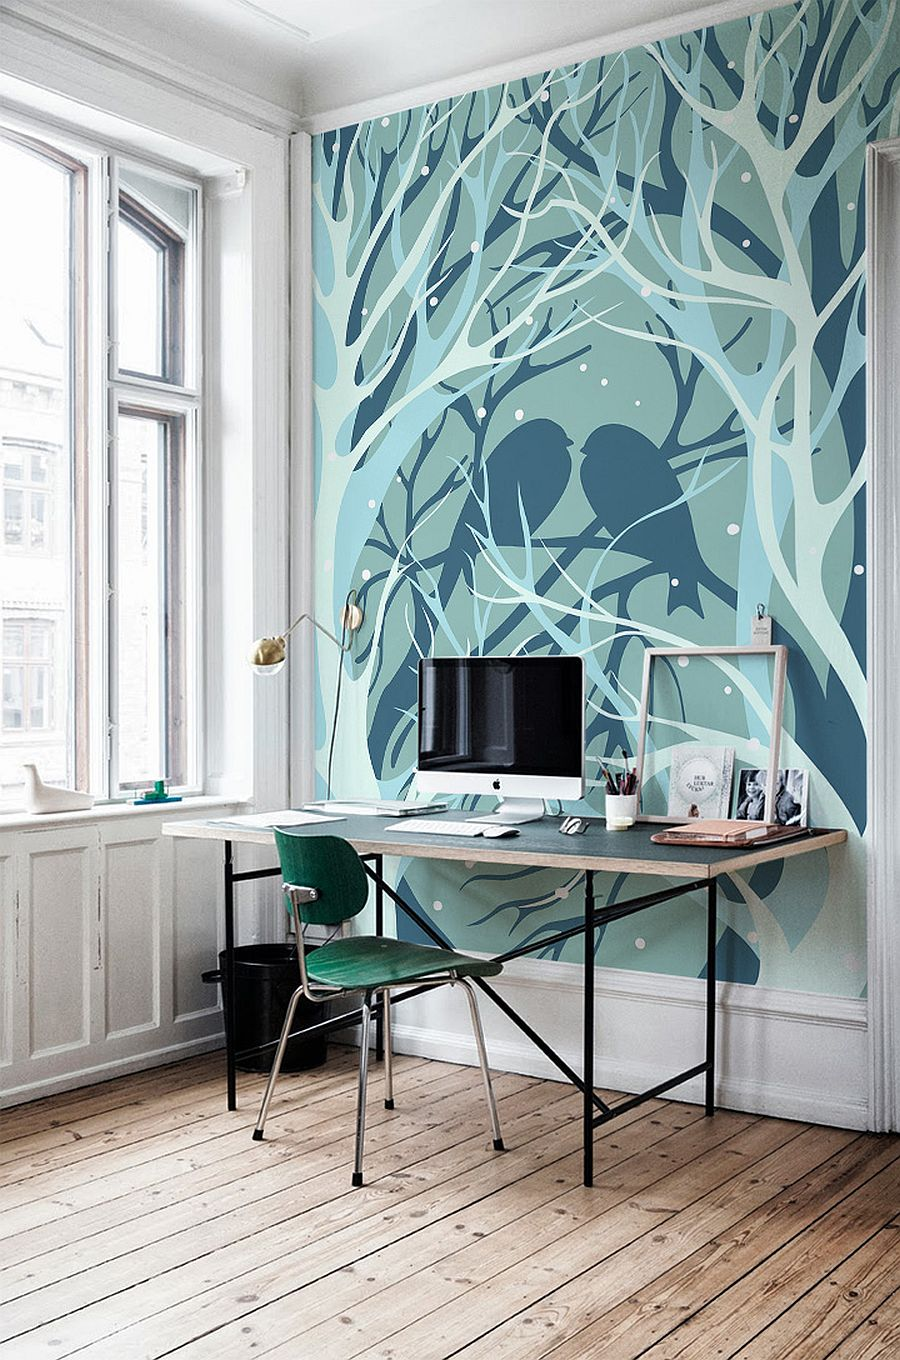 5 simple ways to refresh your home office space yfs magazine photo wall mural source decoist com